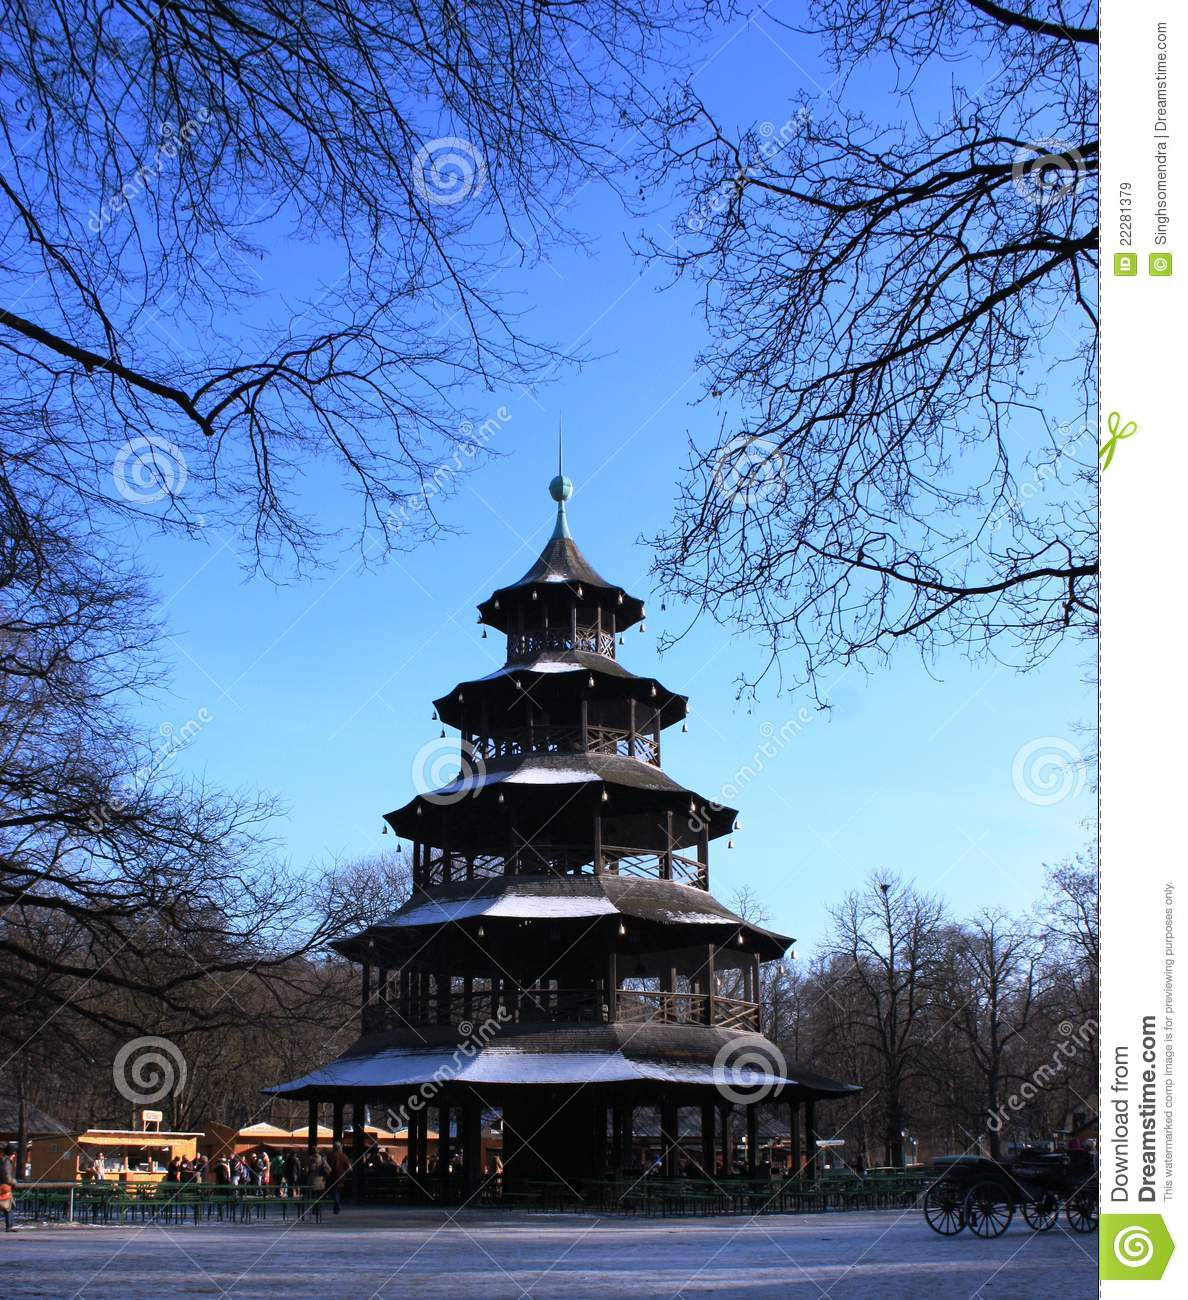 chinese tower in english garden at munich royalty free stock images image 22281379. Black Bedroom Furniture Sets. Home Design Ideas